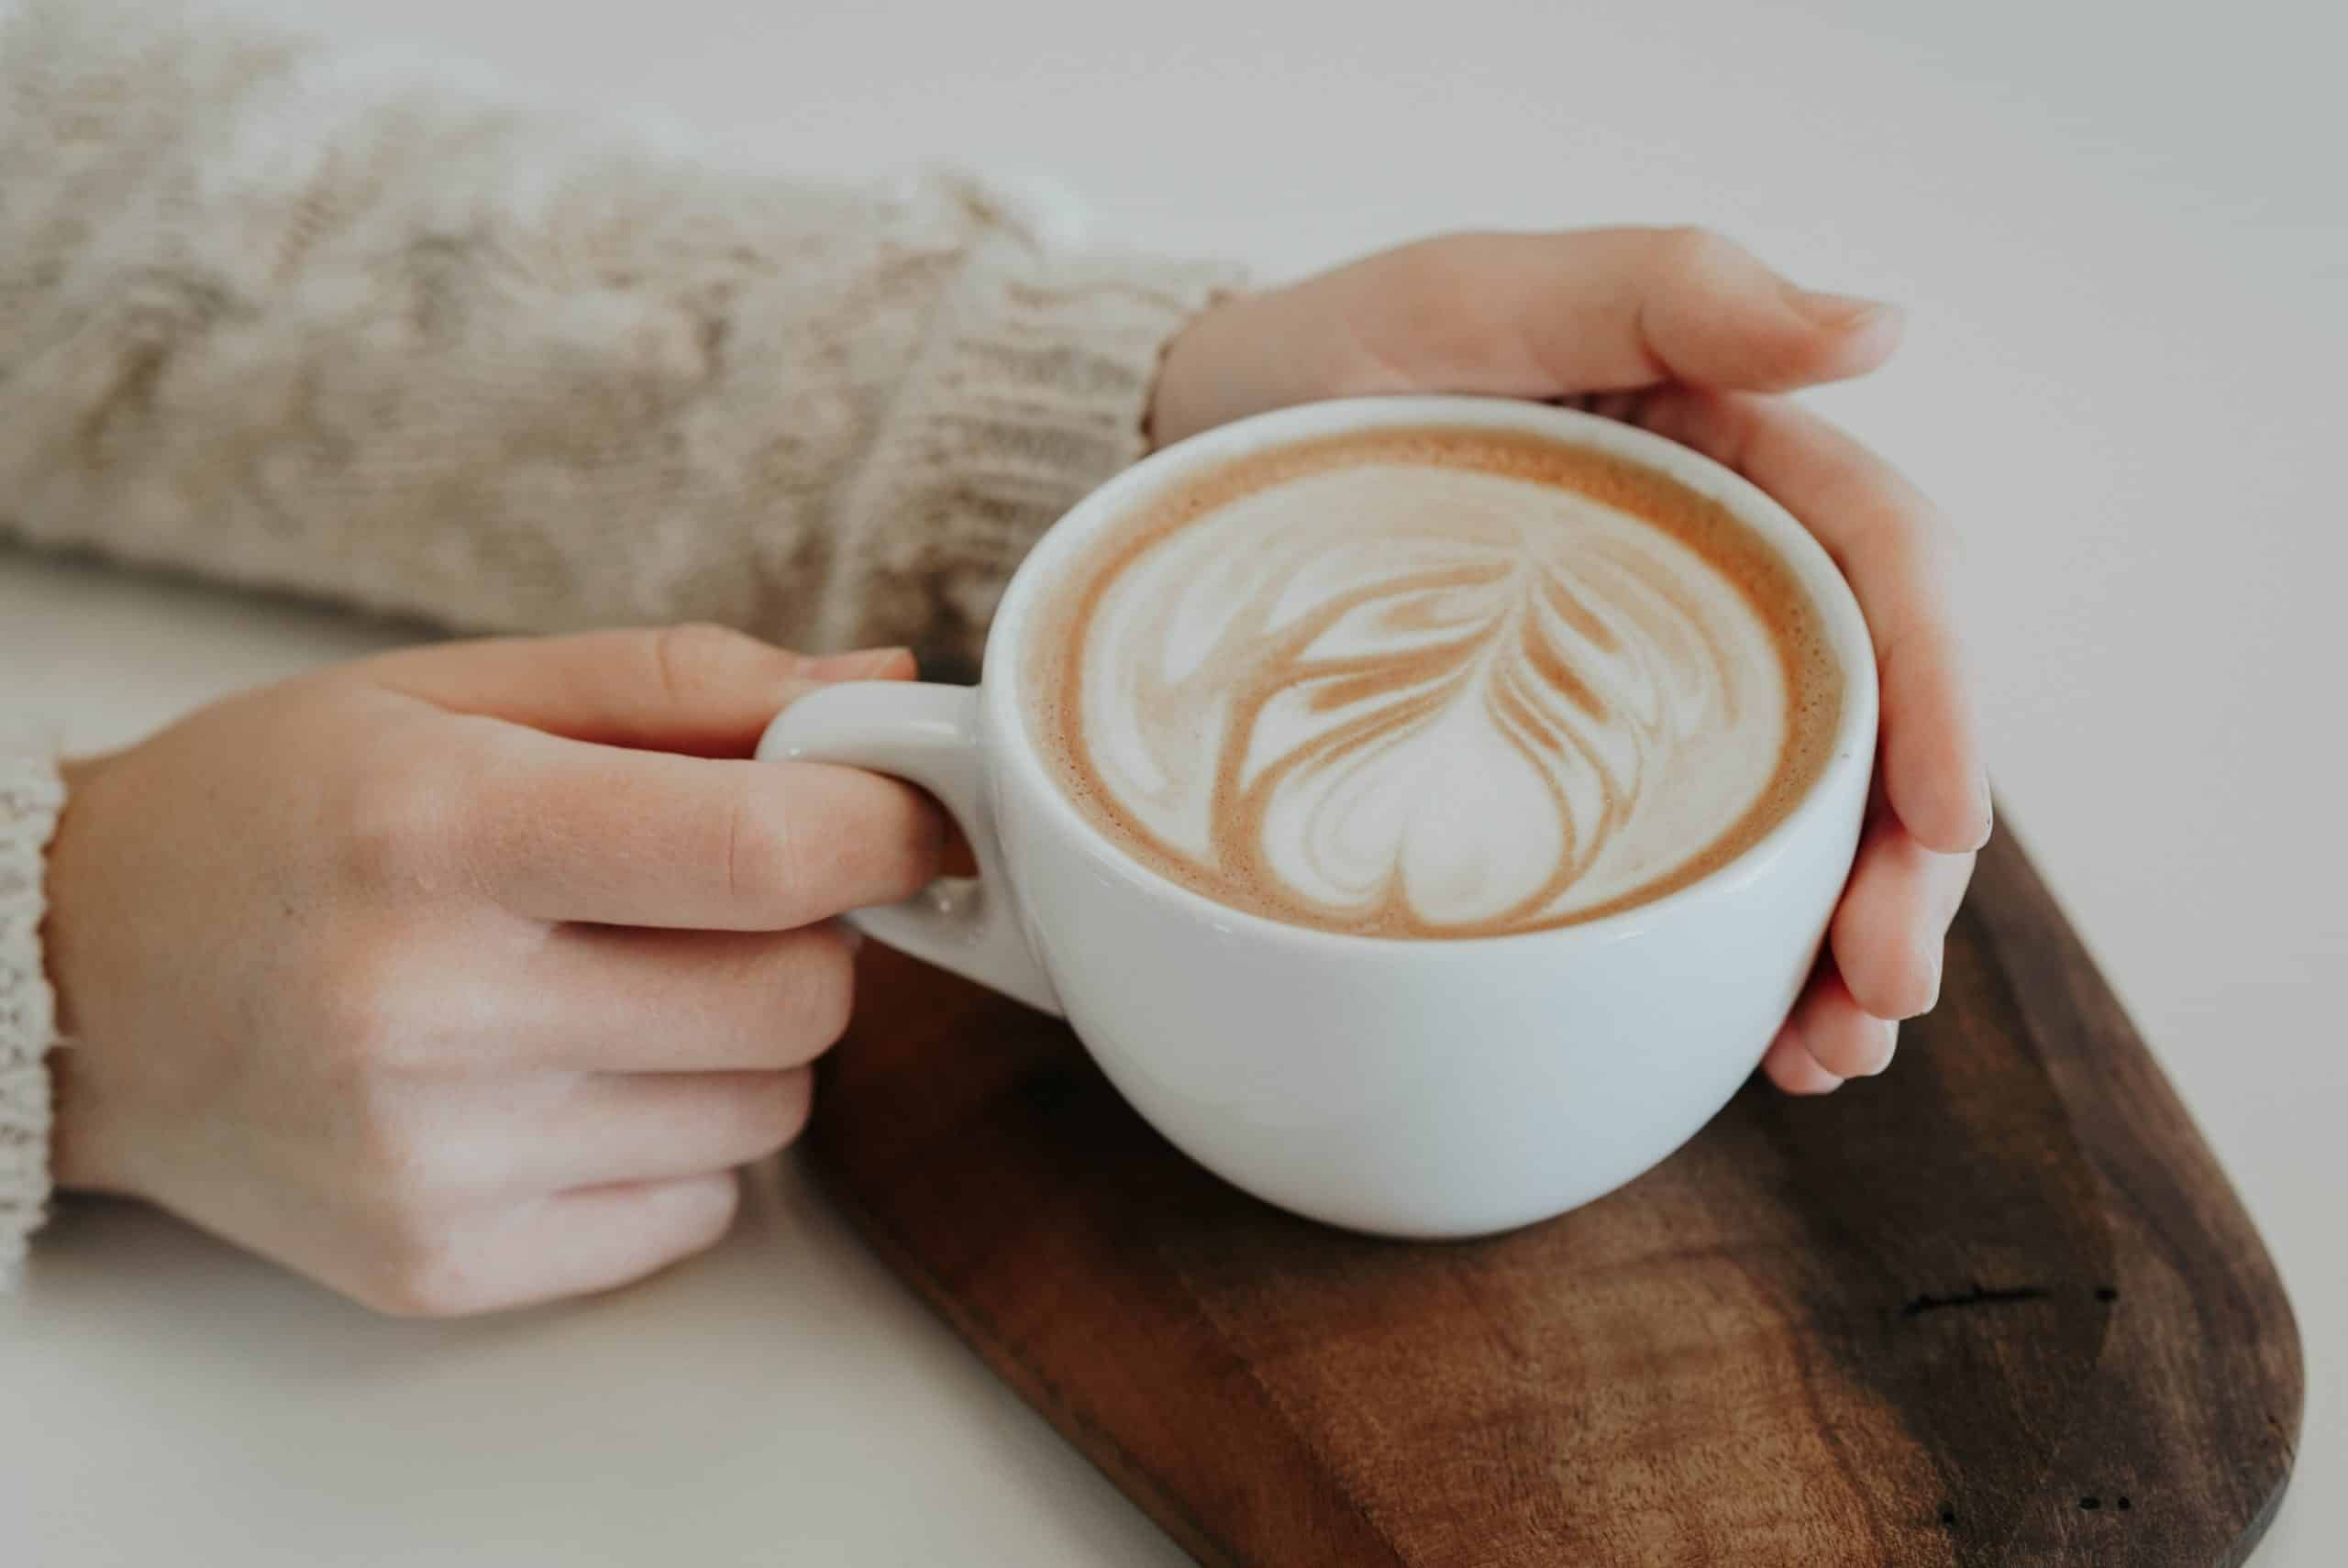 A person holding a cup of coffee with both hands.